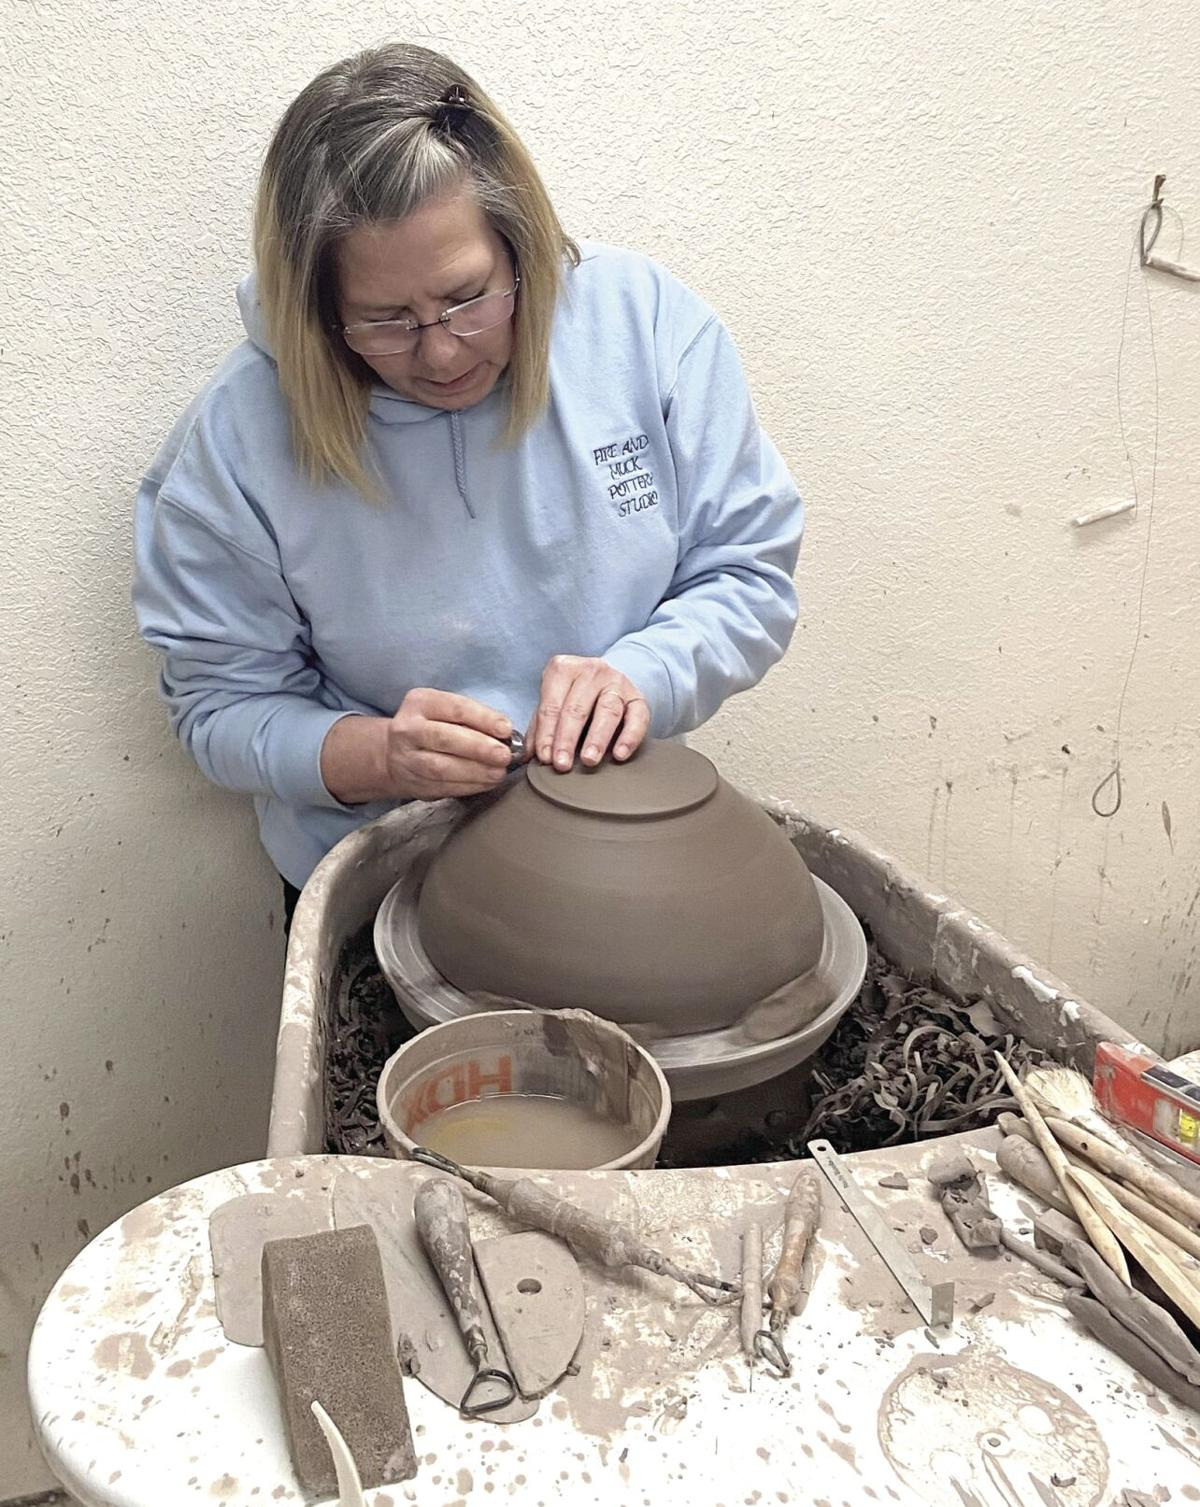 Kerry Collins trimming a bowl at her potter's wheel.